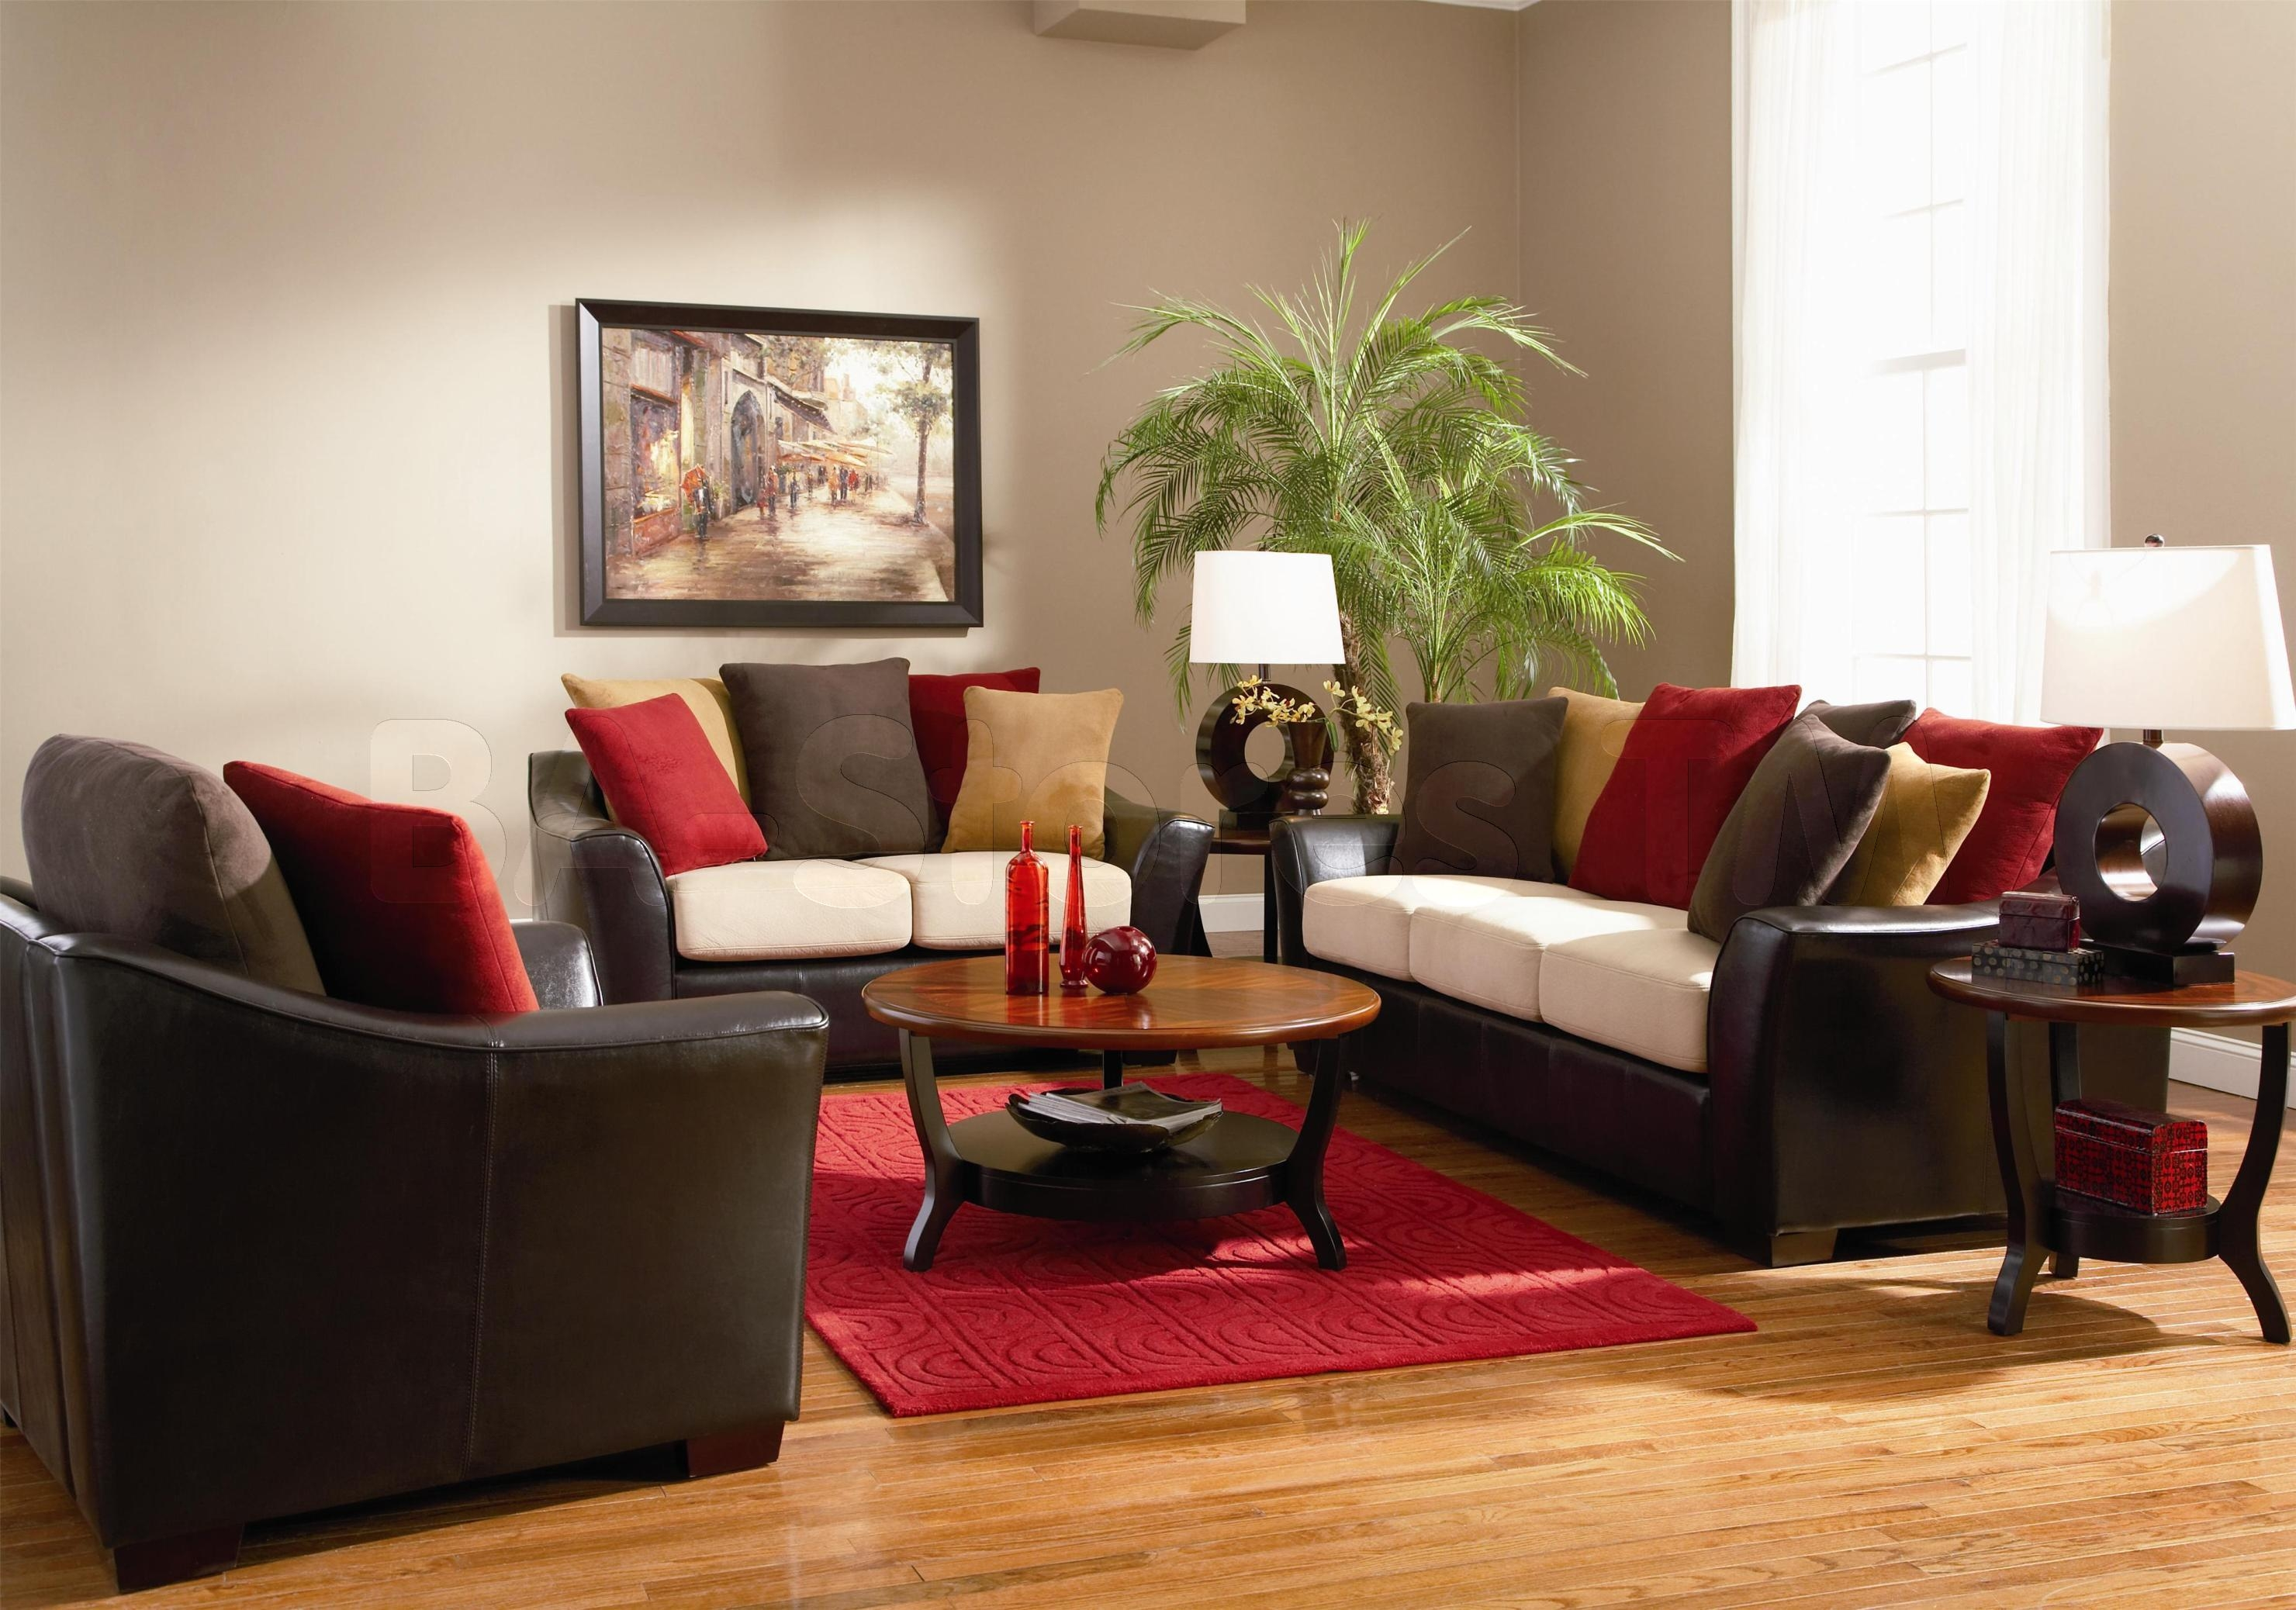 full size of living room decor:brown living room furniture decorating ideas JXXCKUY